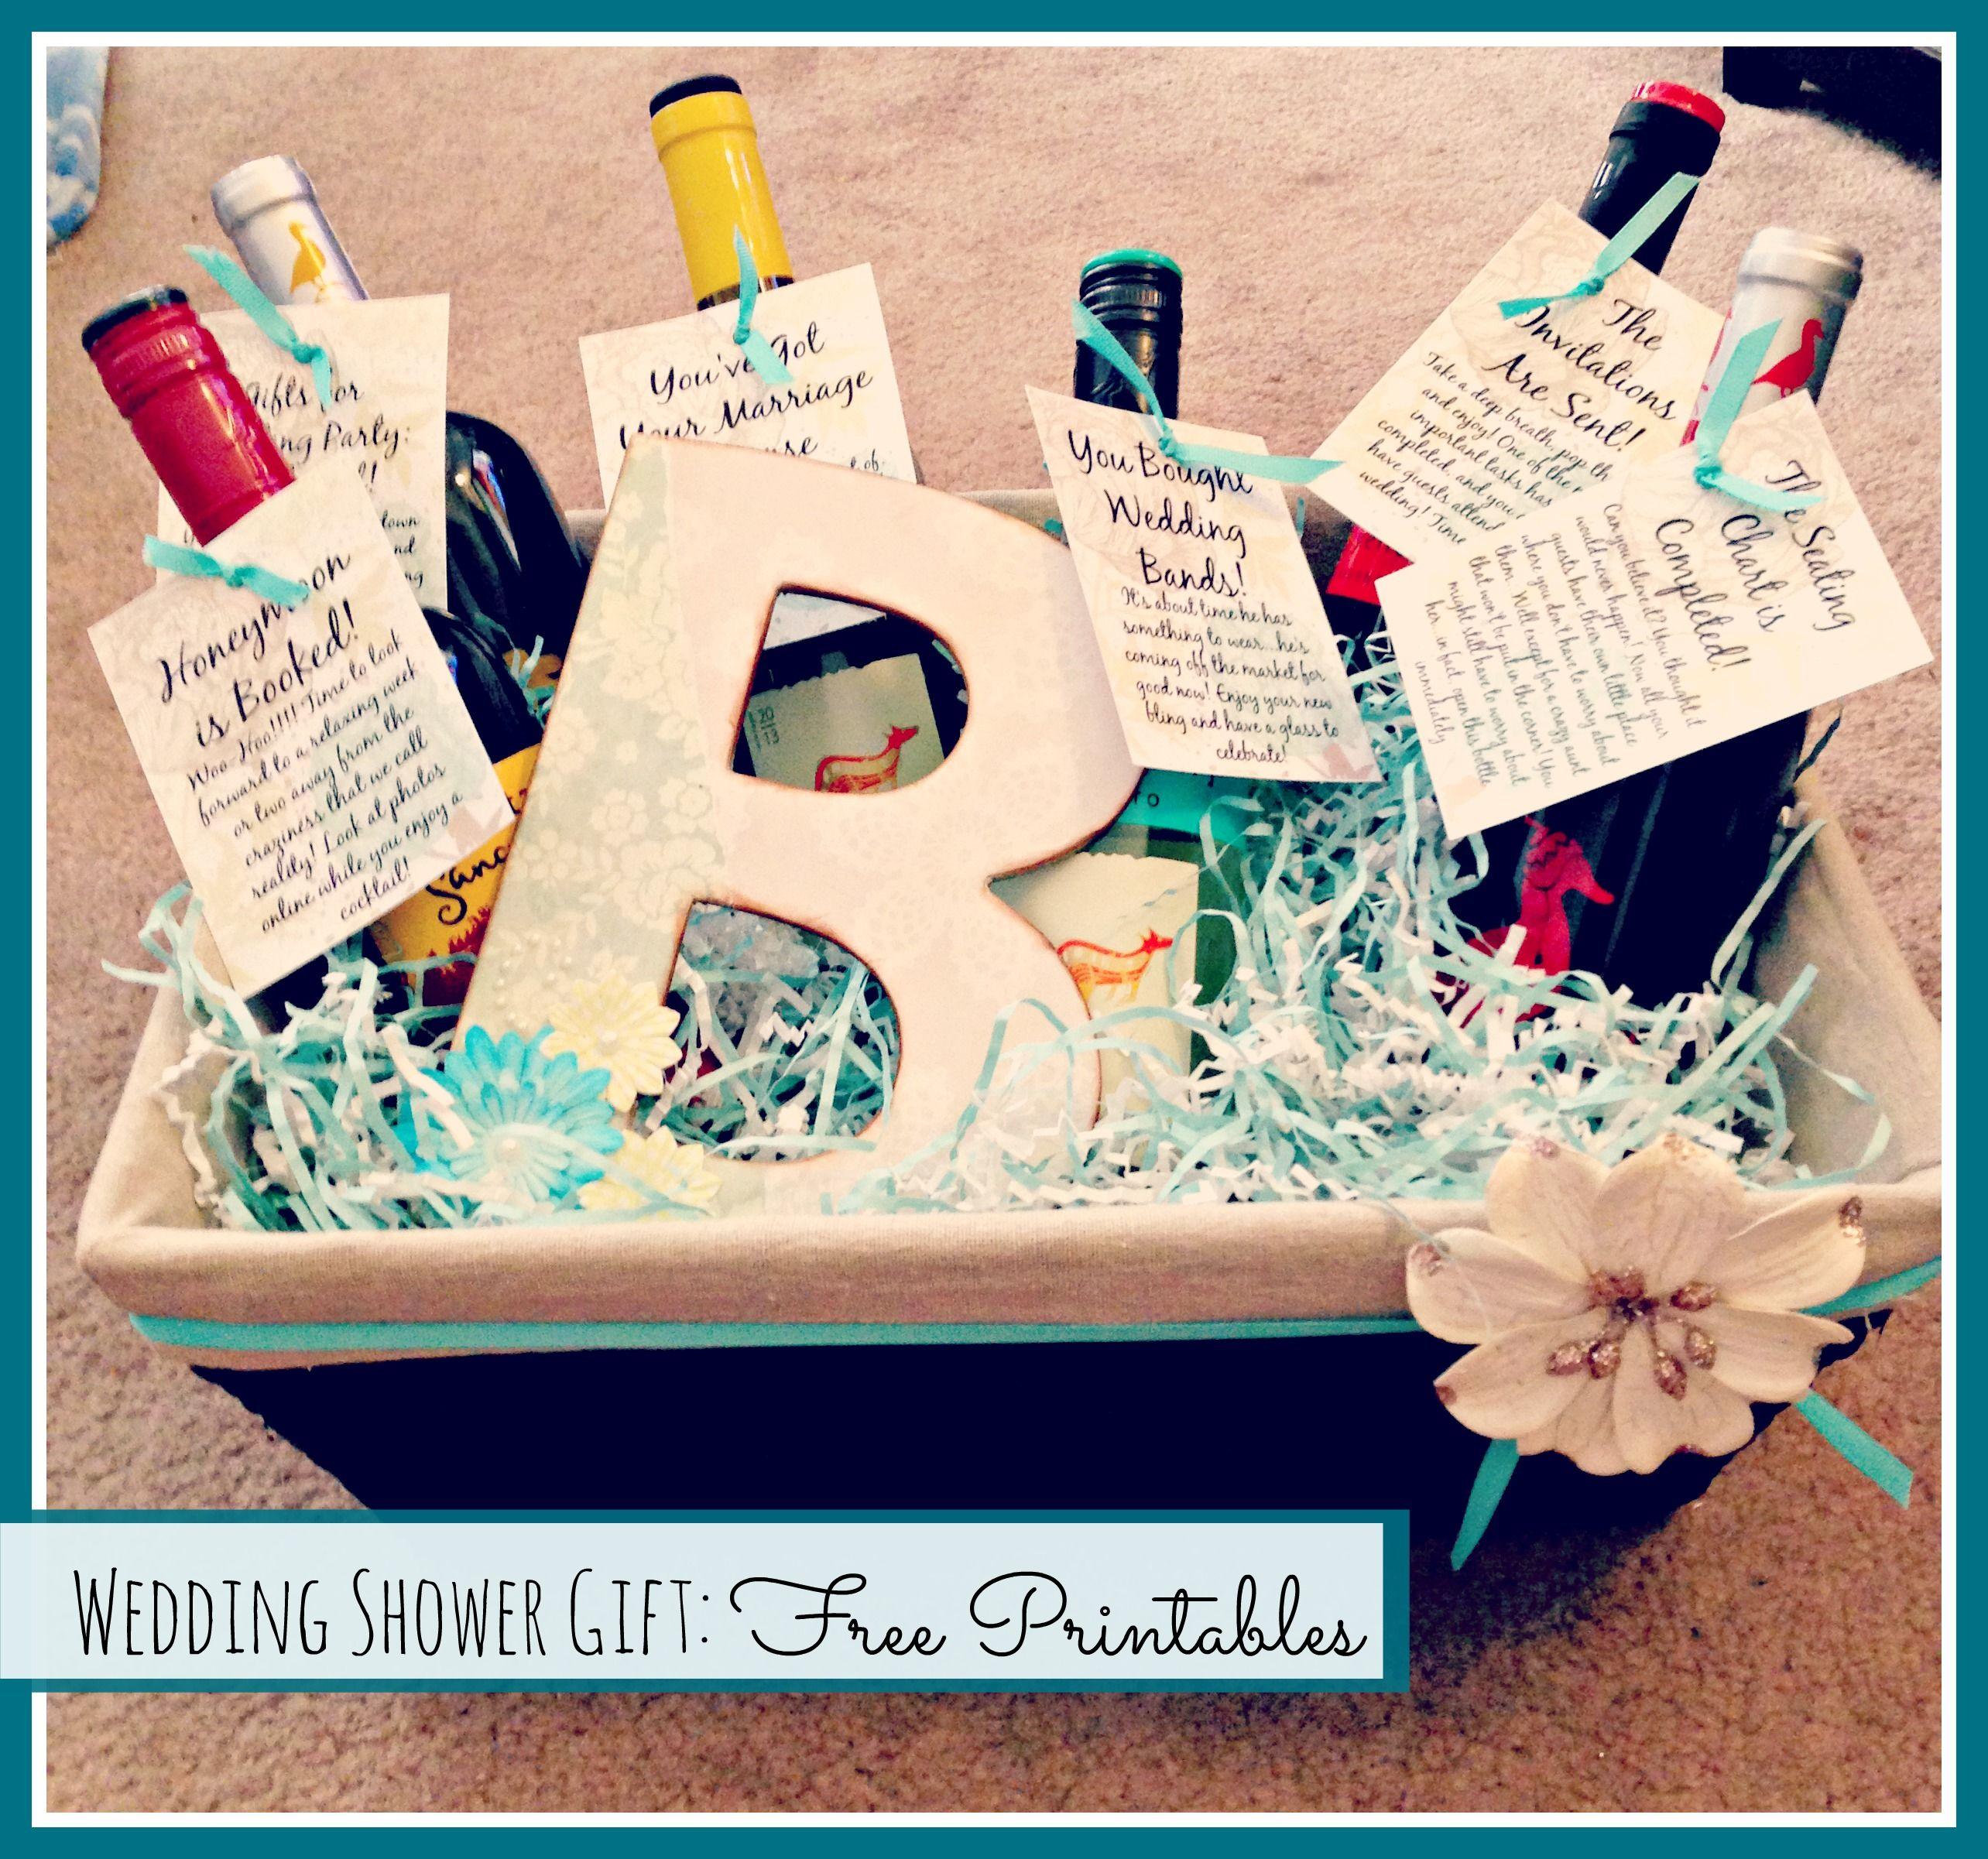 Another Summer Another Wedding Engagement Party Gifts Wedding Shower Gift Wedding Gifts